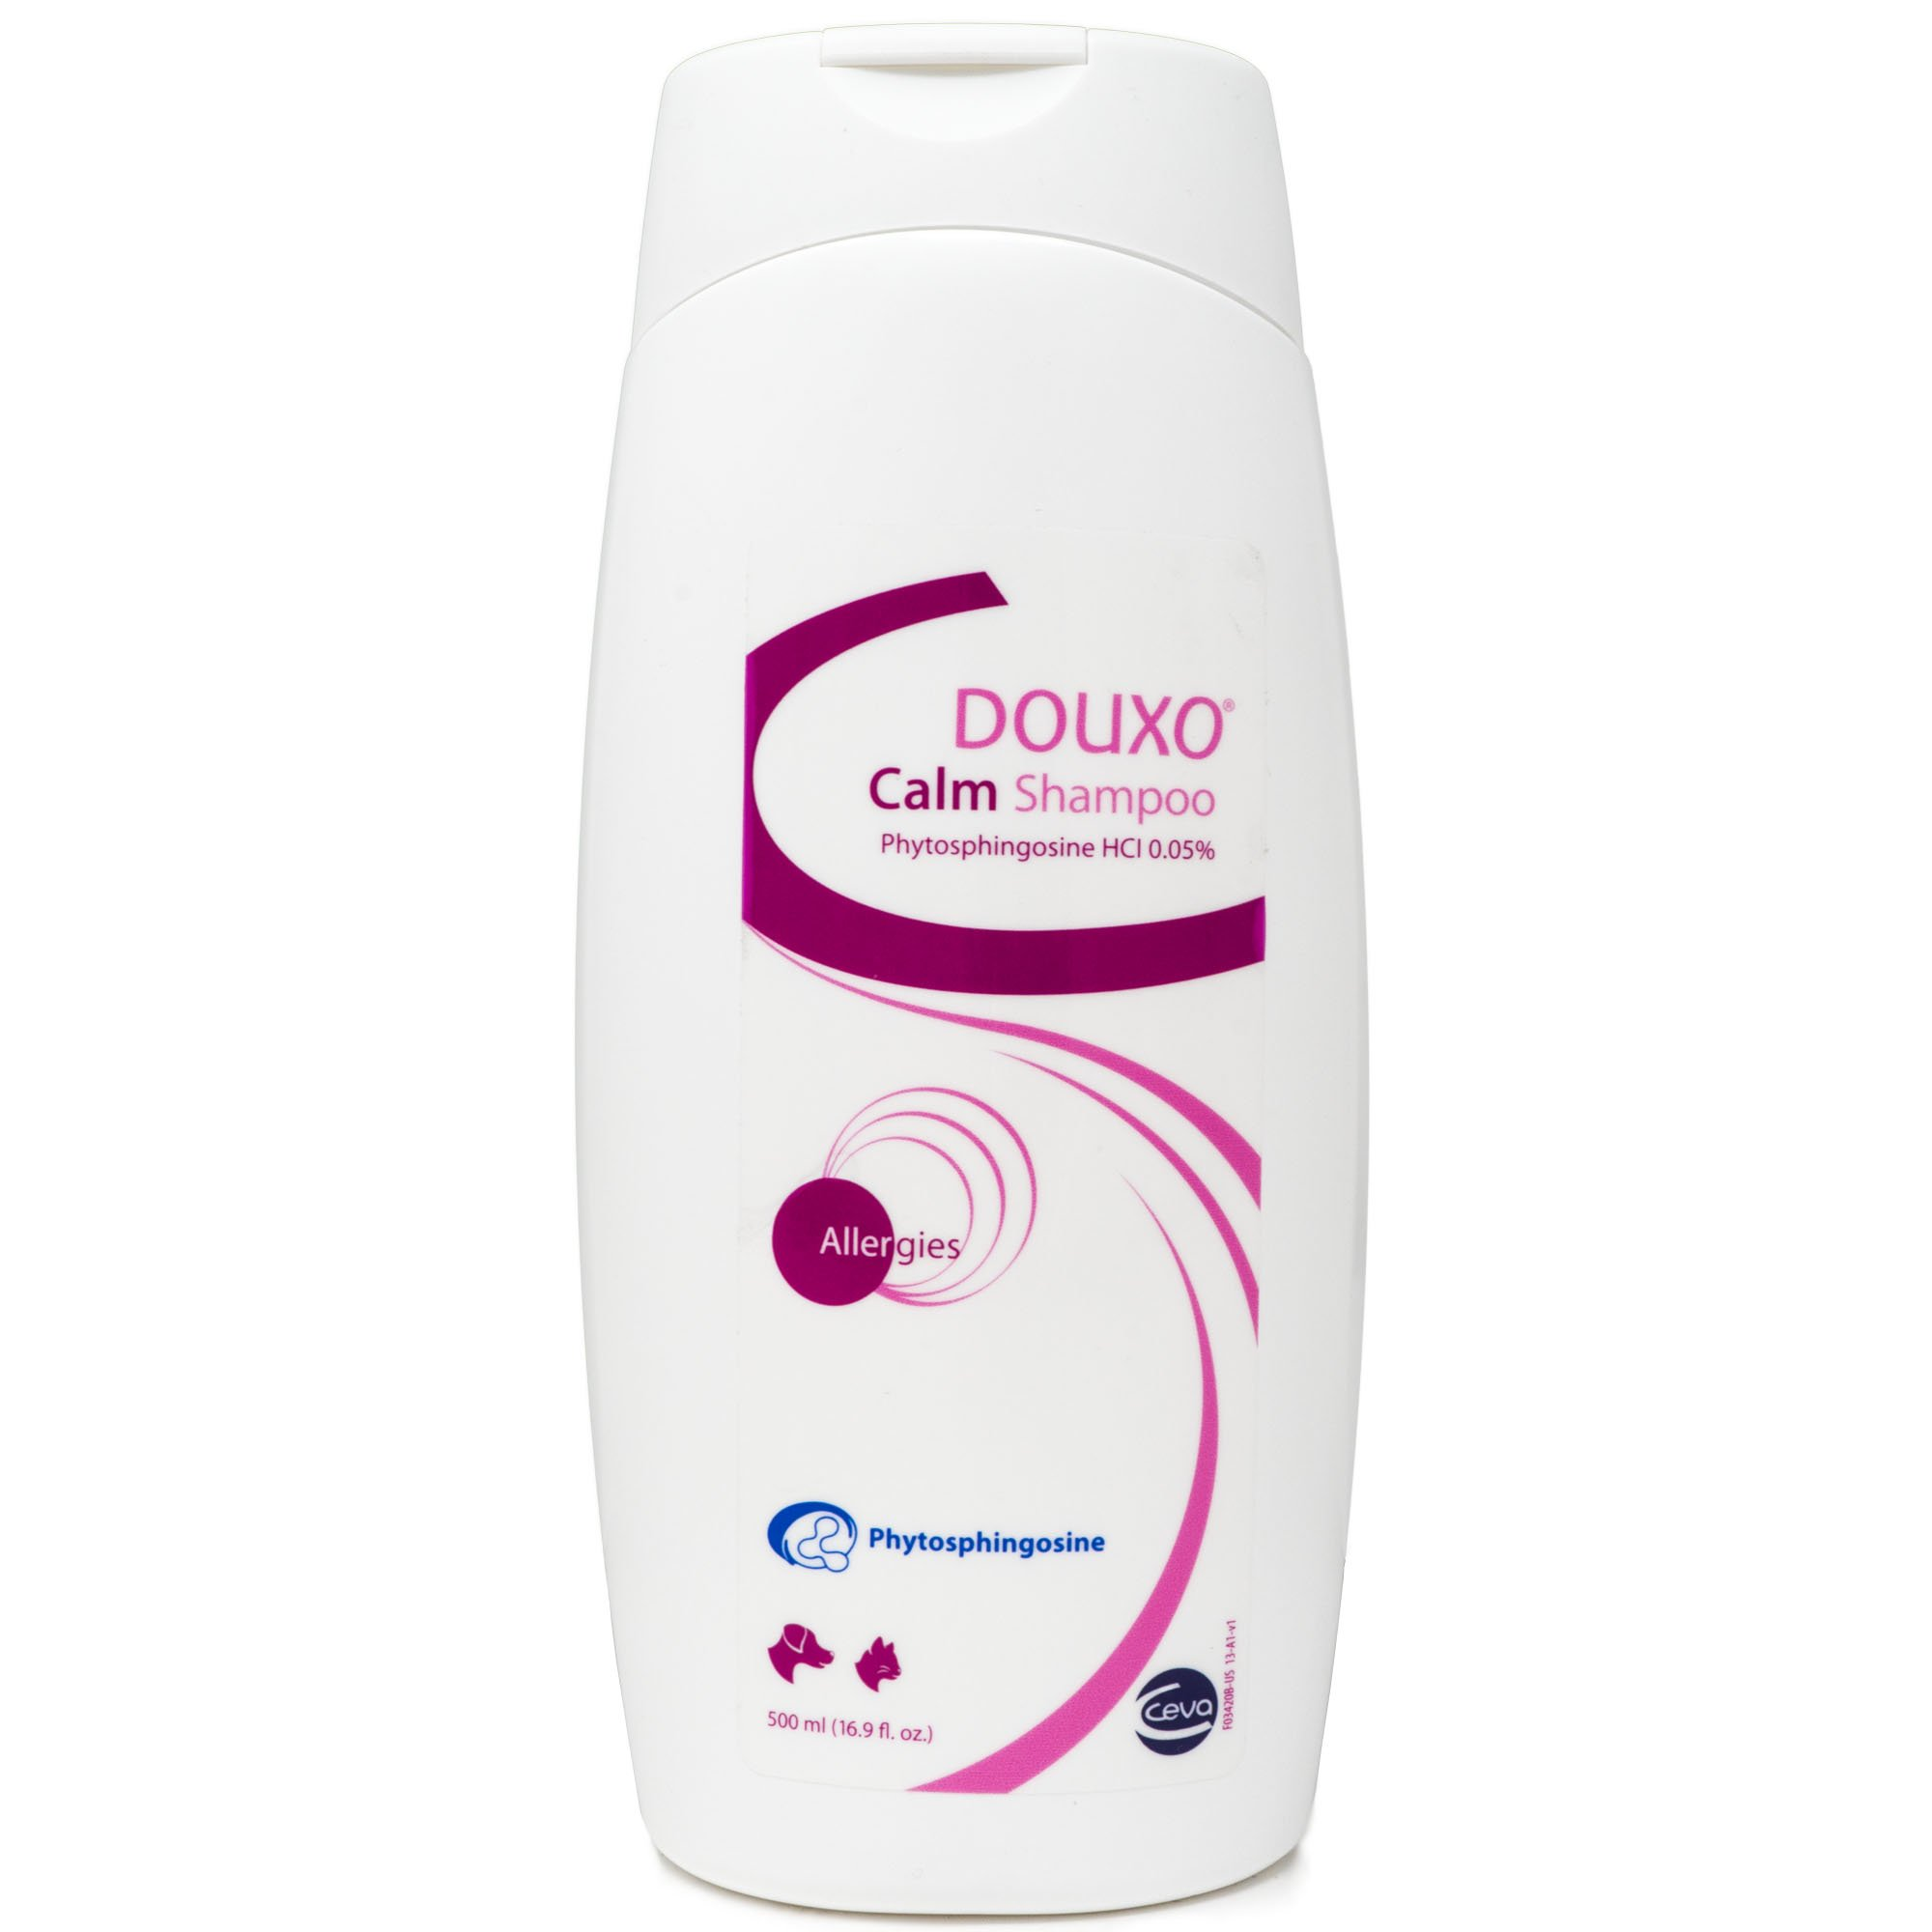 CEVA Animal Health Douxo (Sogeval) Calm Shampoo for Dogs & Cats (500 ml) - Topical Solution for Allergies